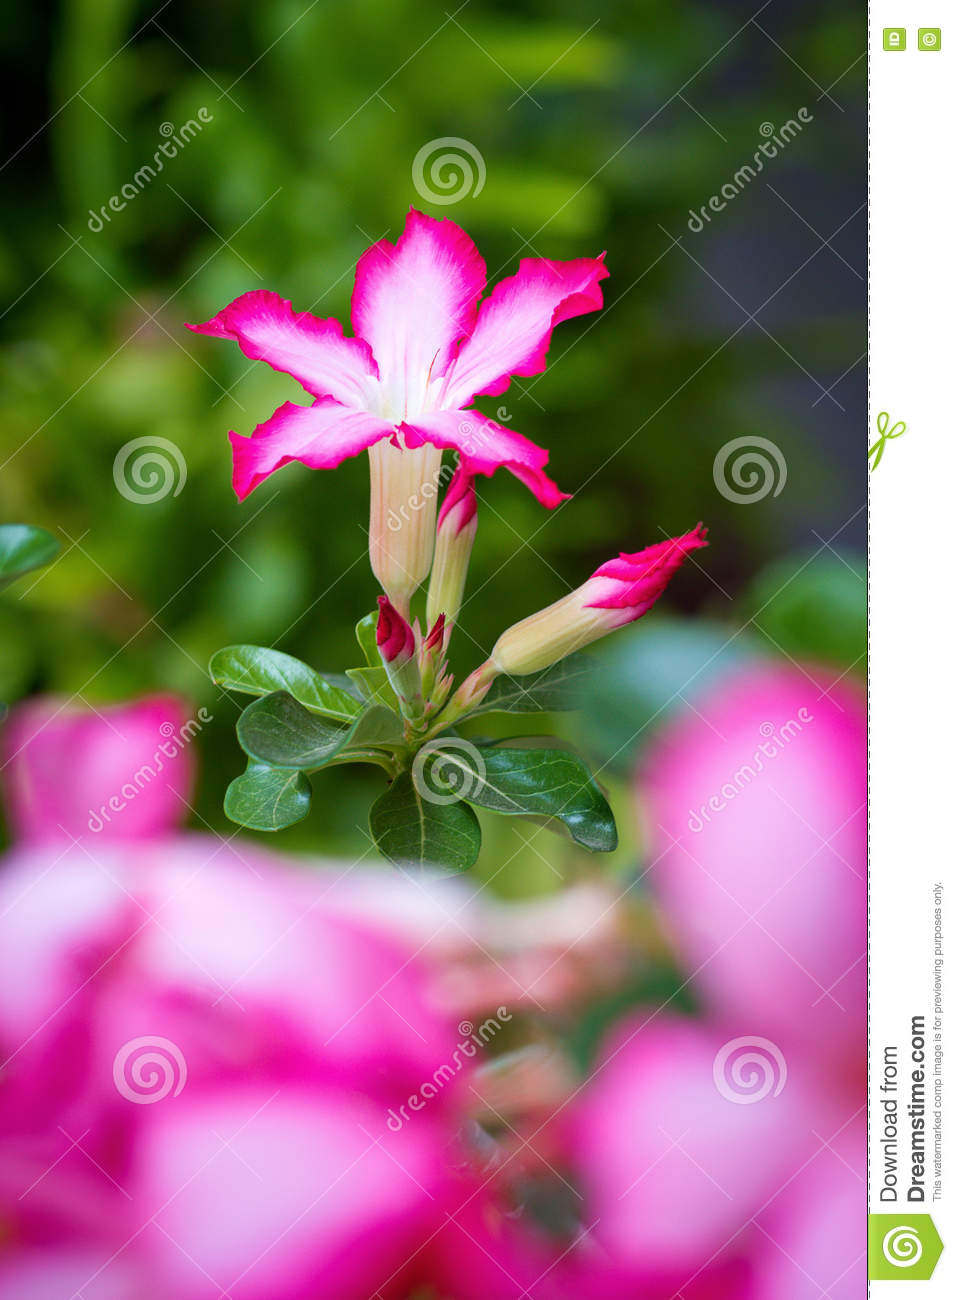 The Pink Desert Rose Or Impala Lily Flower Stock Photo Image Of